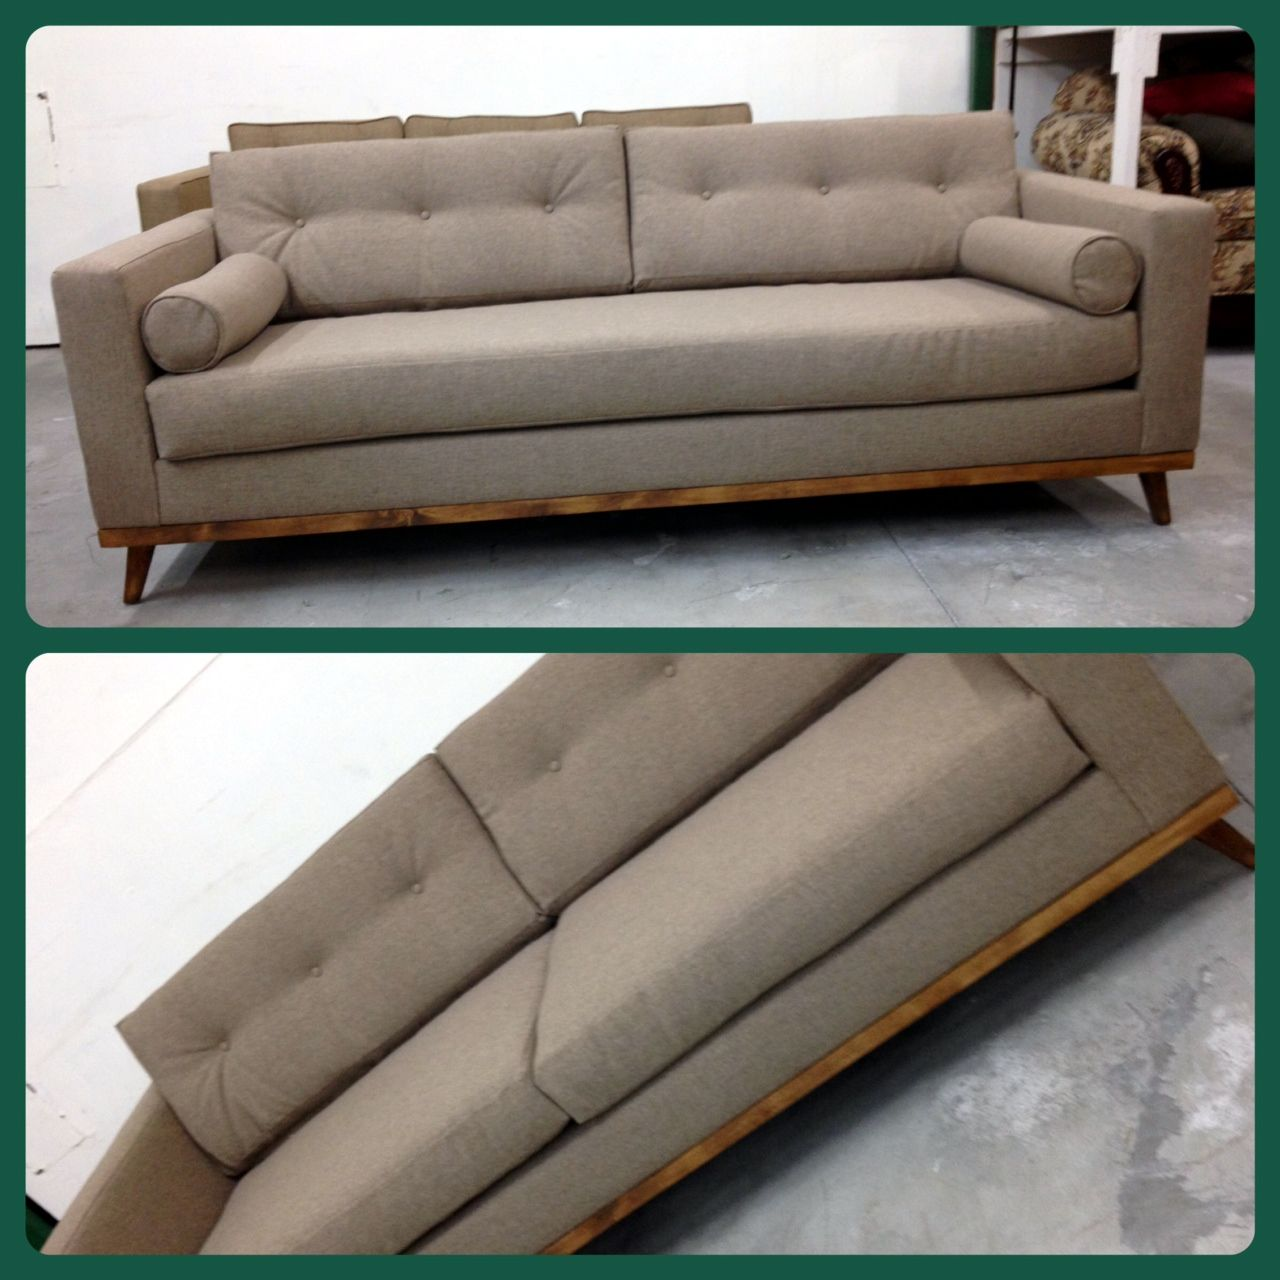 MidCentury Modern Sofa with Bolster Pillows and Danish Frame